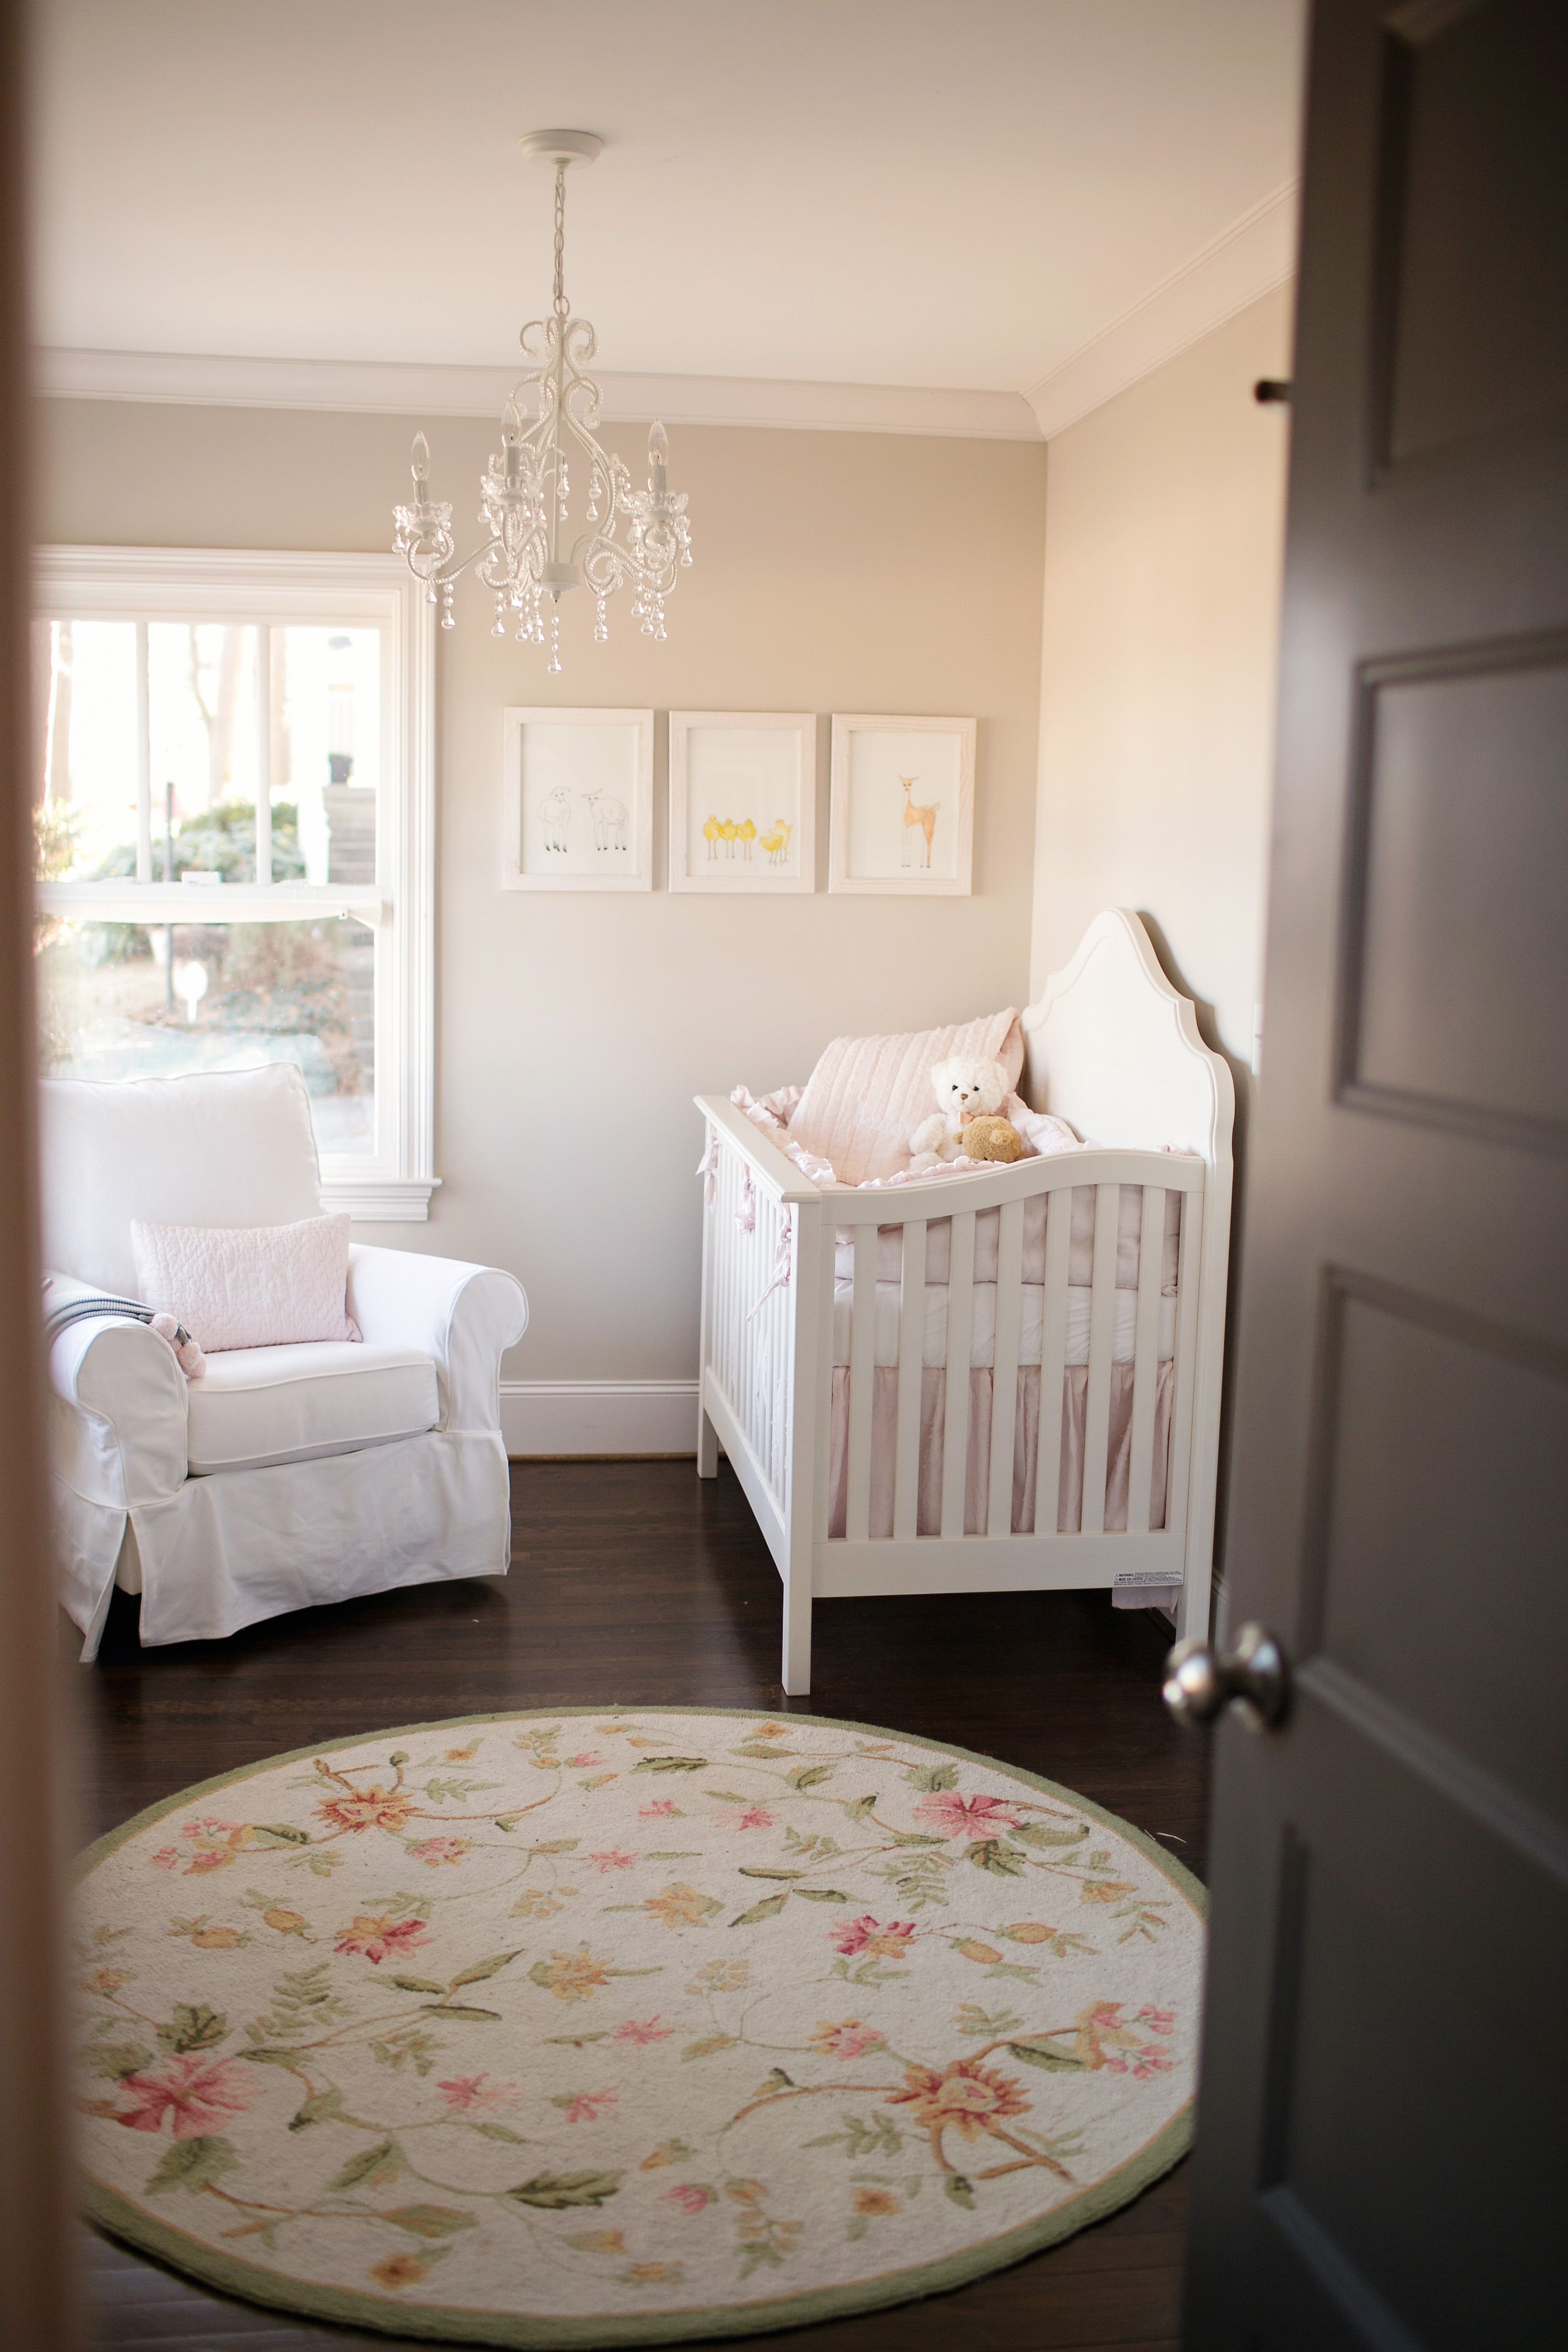 Designing for a Brand New Baby, in a Brand New Space | Design ...